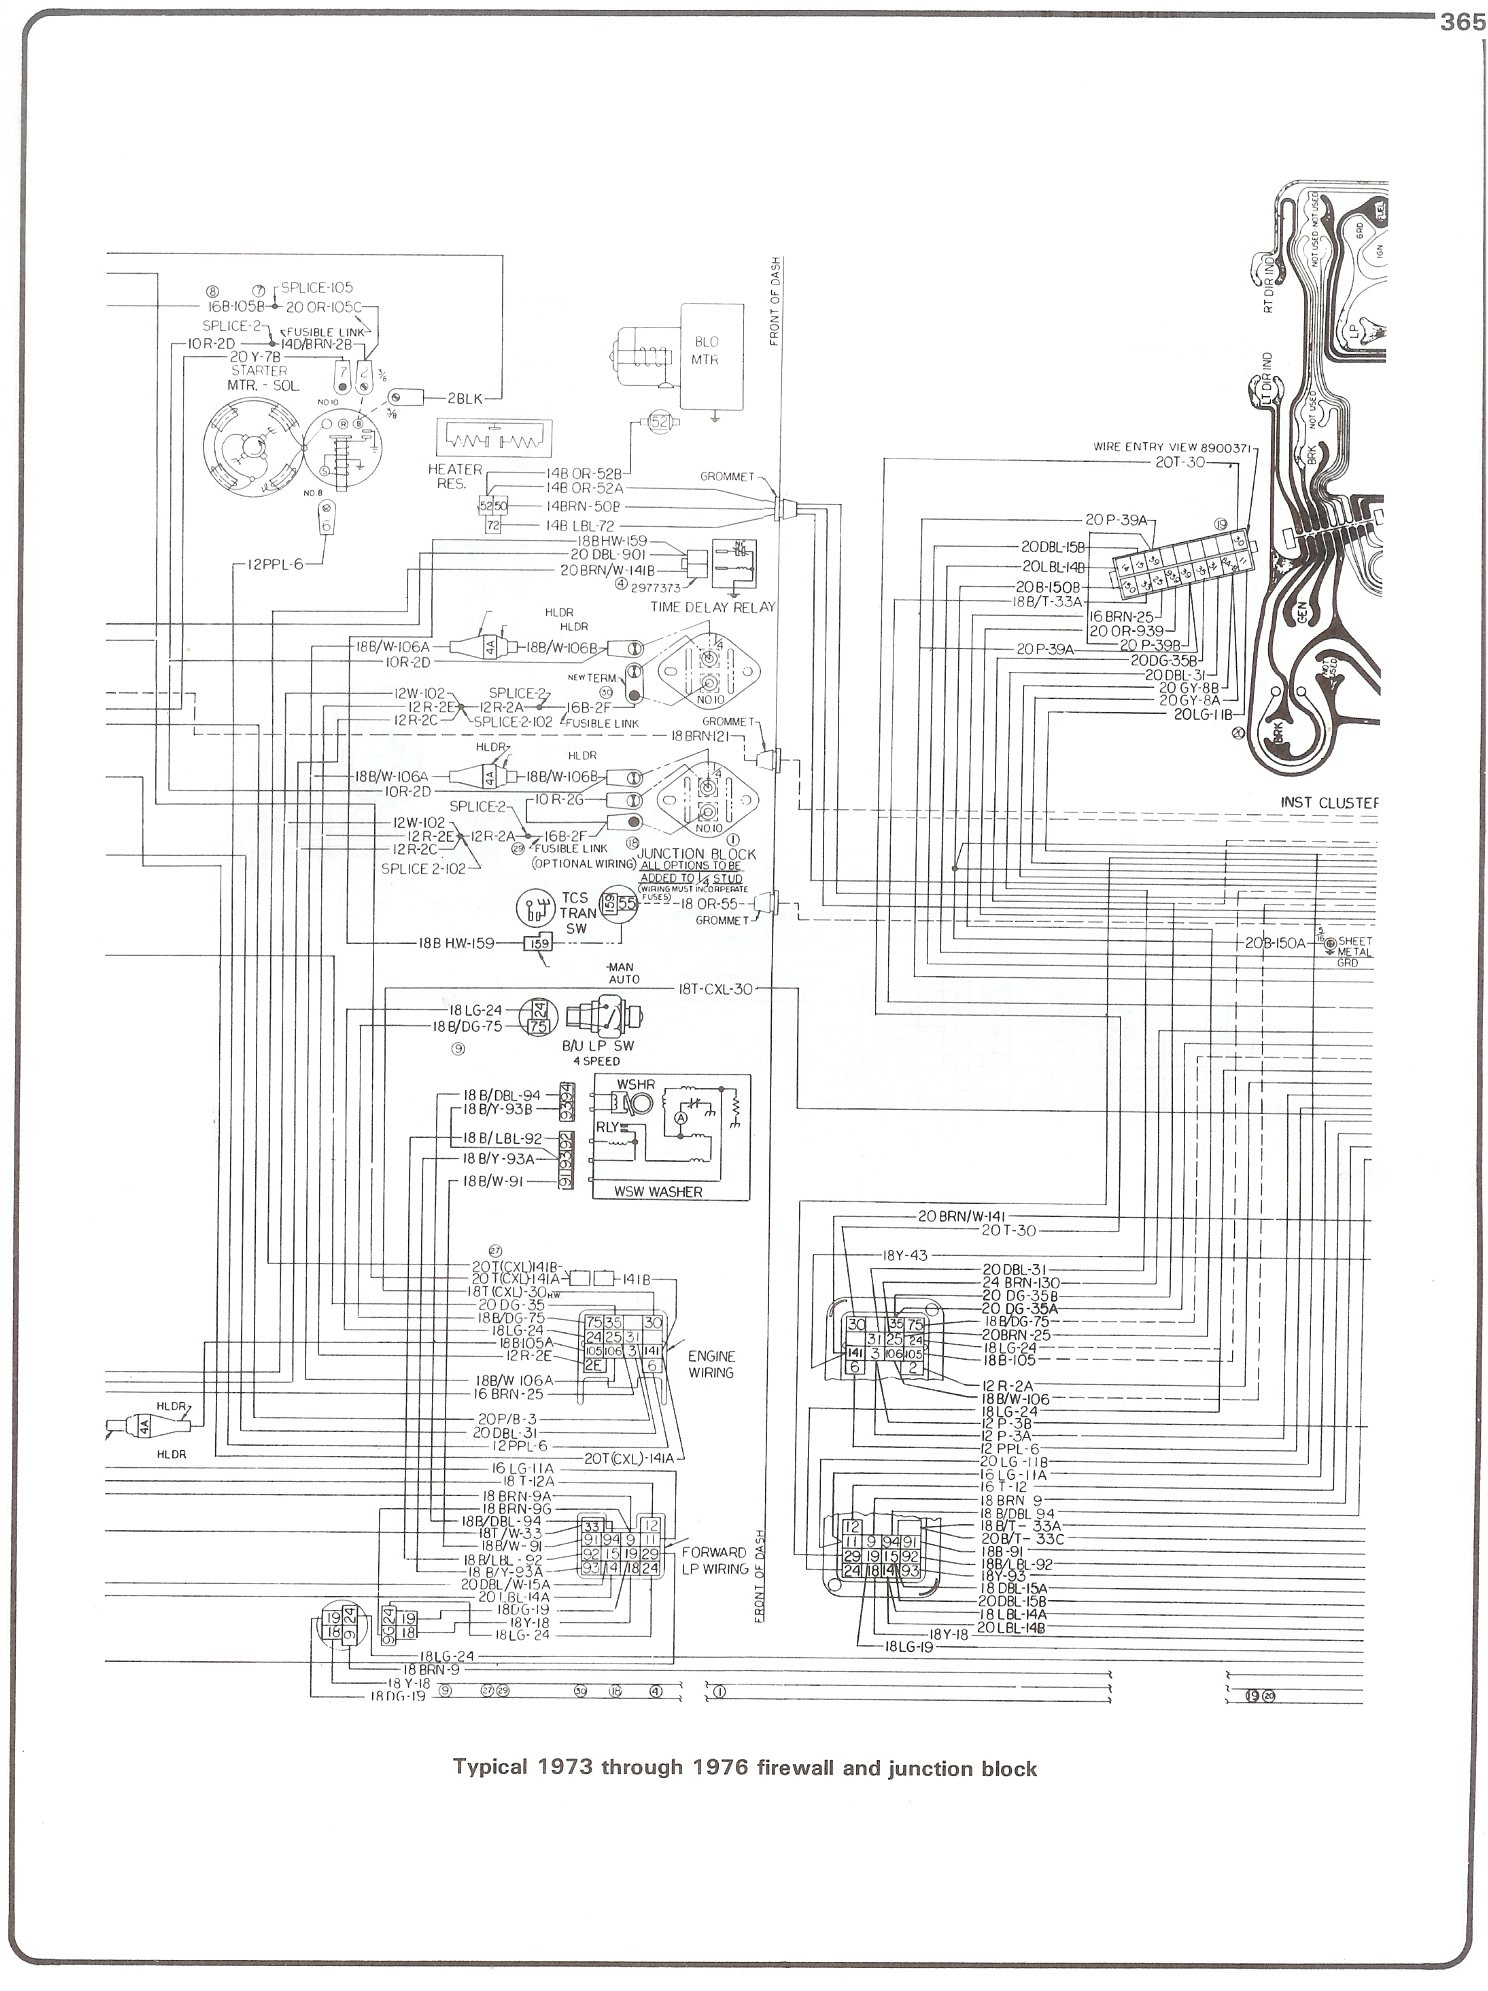 76 Chevy Van Wiring Diagram Diagrams Express Schematics Complete 73 87 1962 Wiper Motor